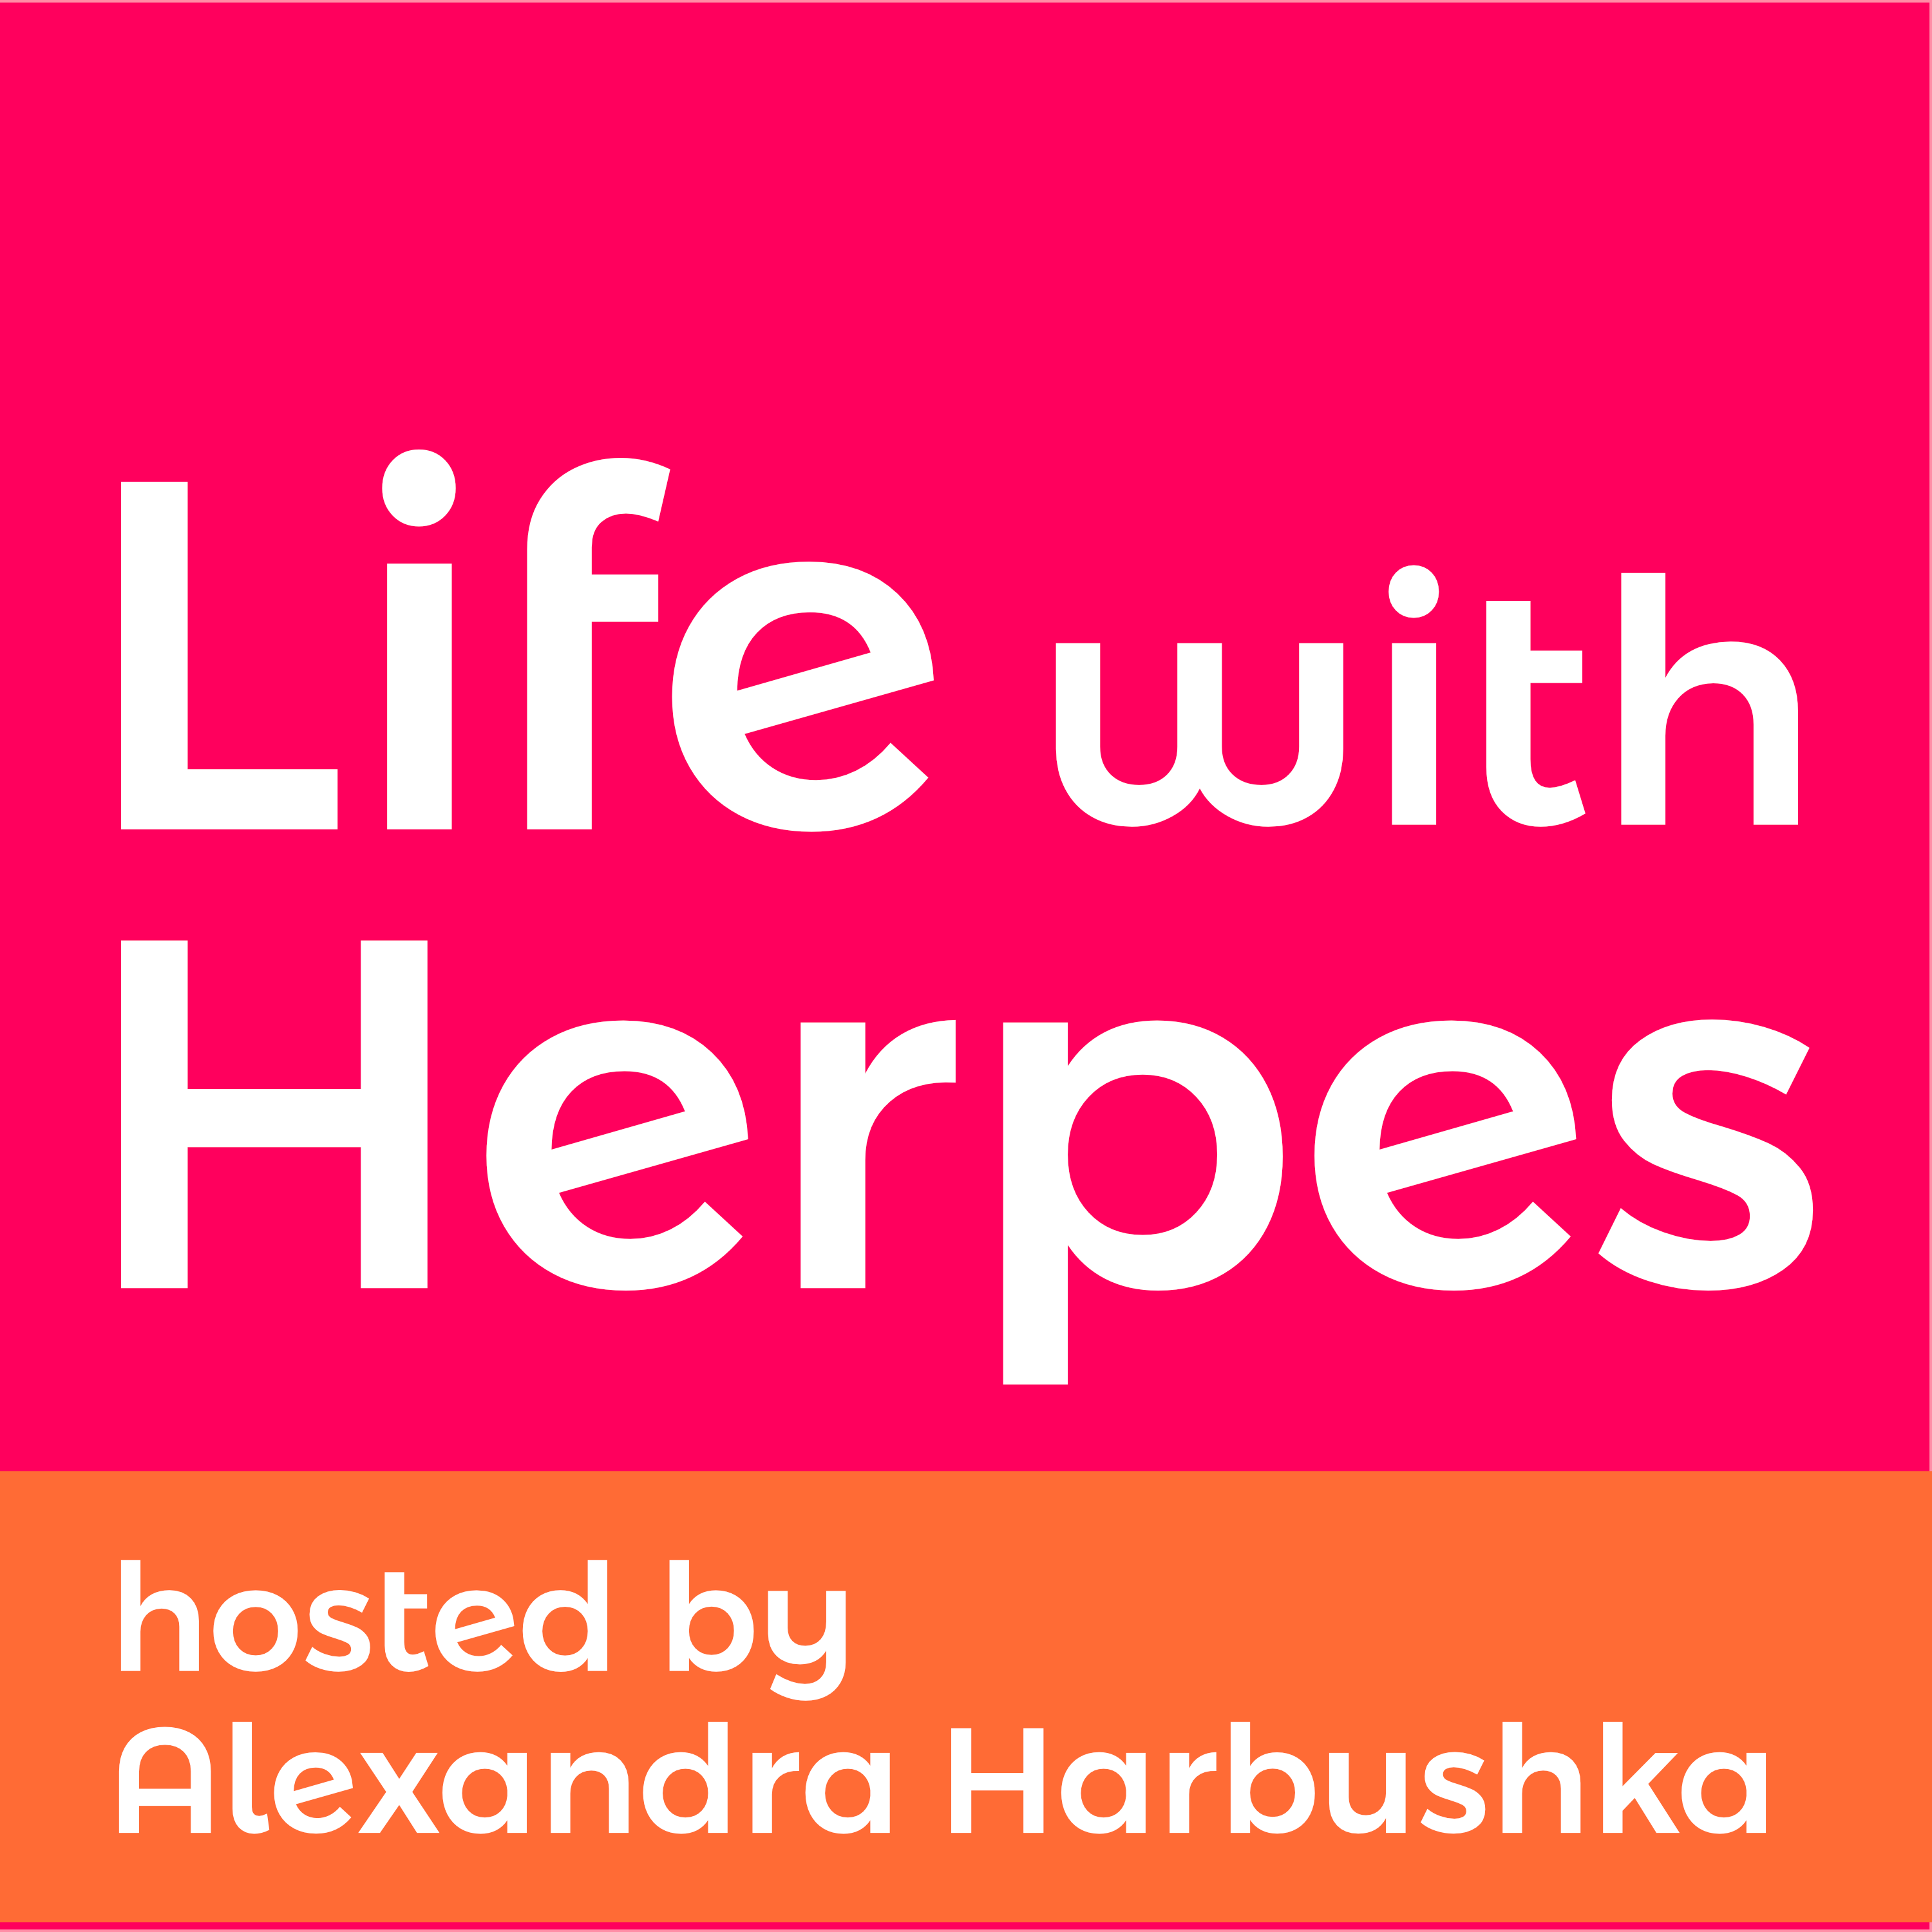 Dating sex and herpes